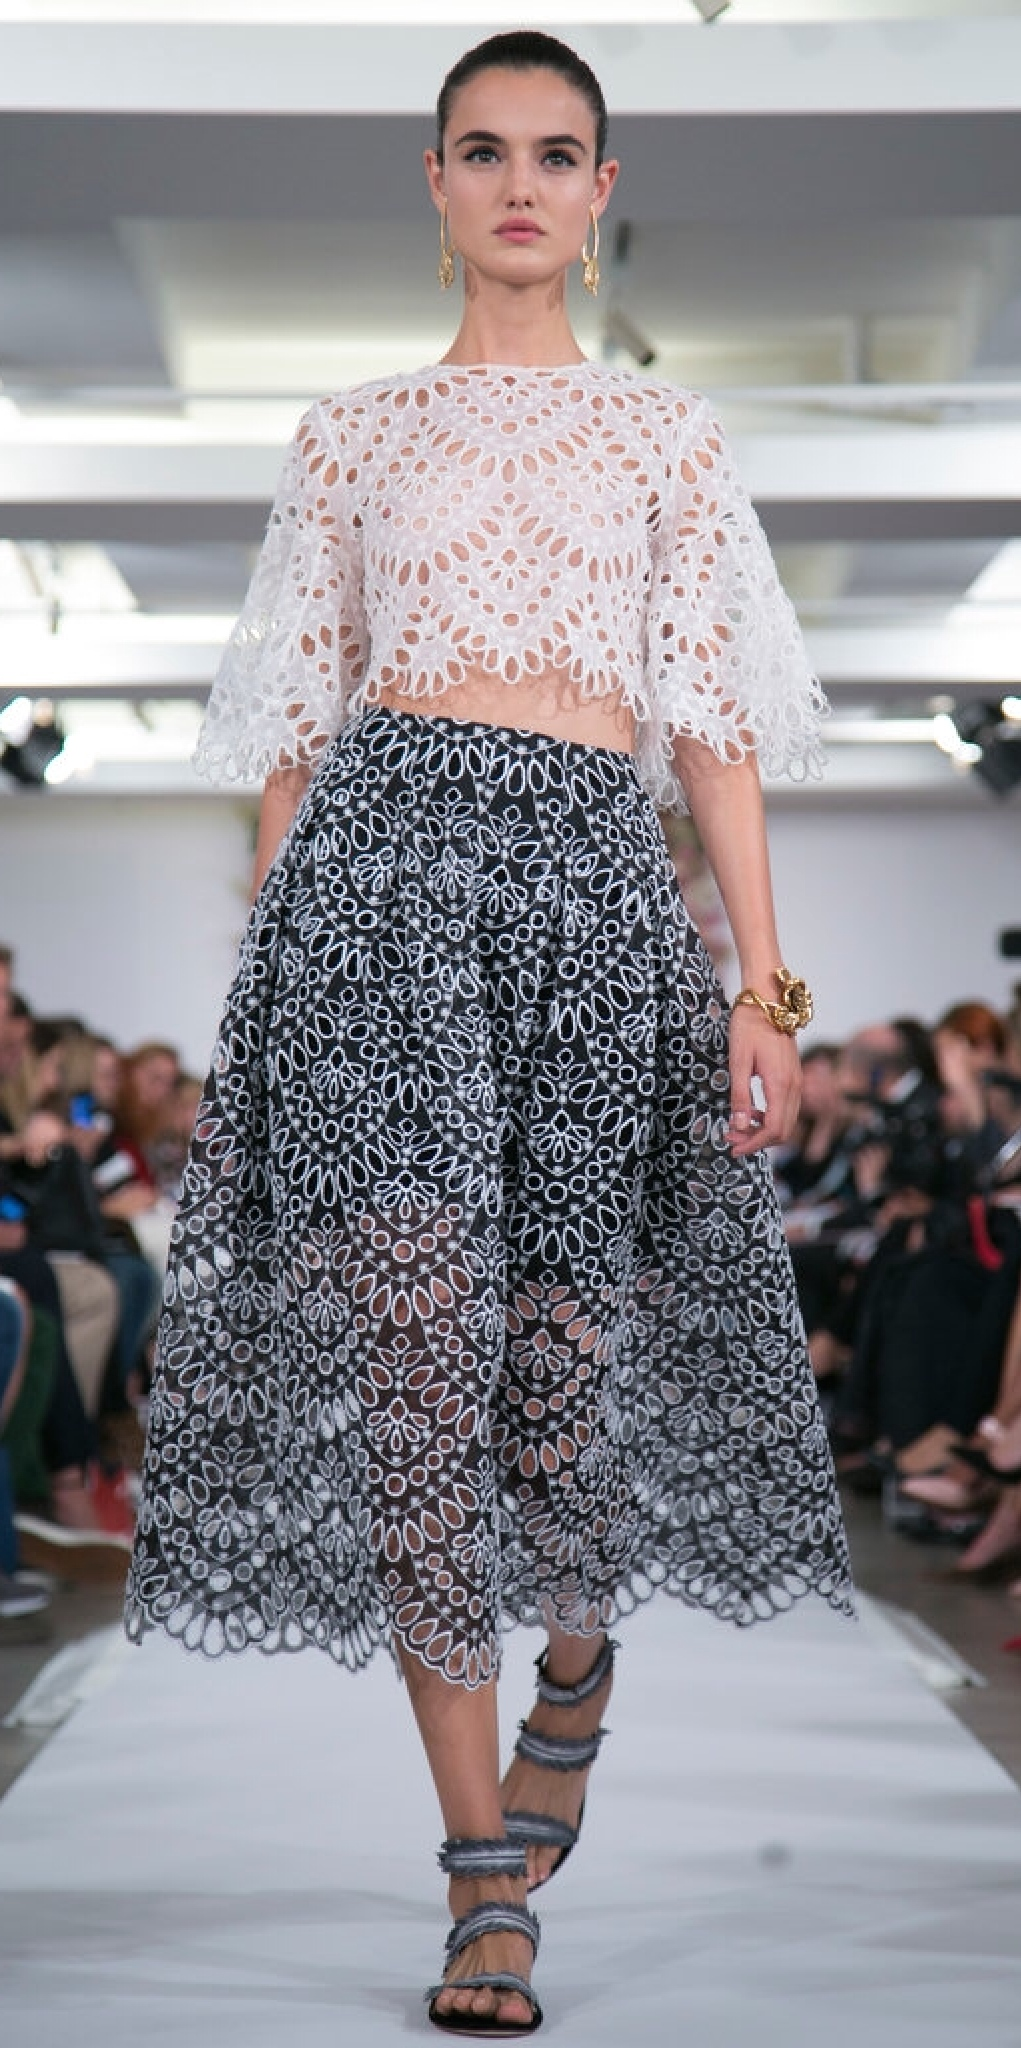 Patterned eyelet lace on top and bottom gives an allover transparent feel to these pieces. (Oscar de la Renta)